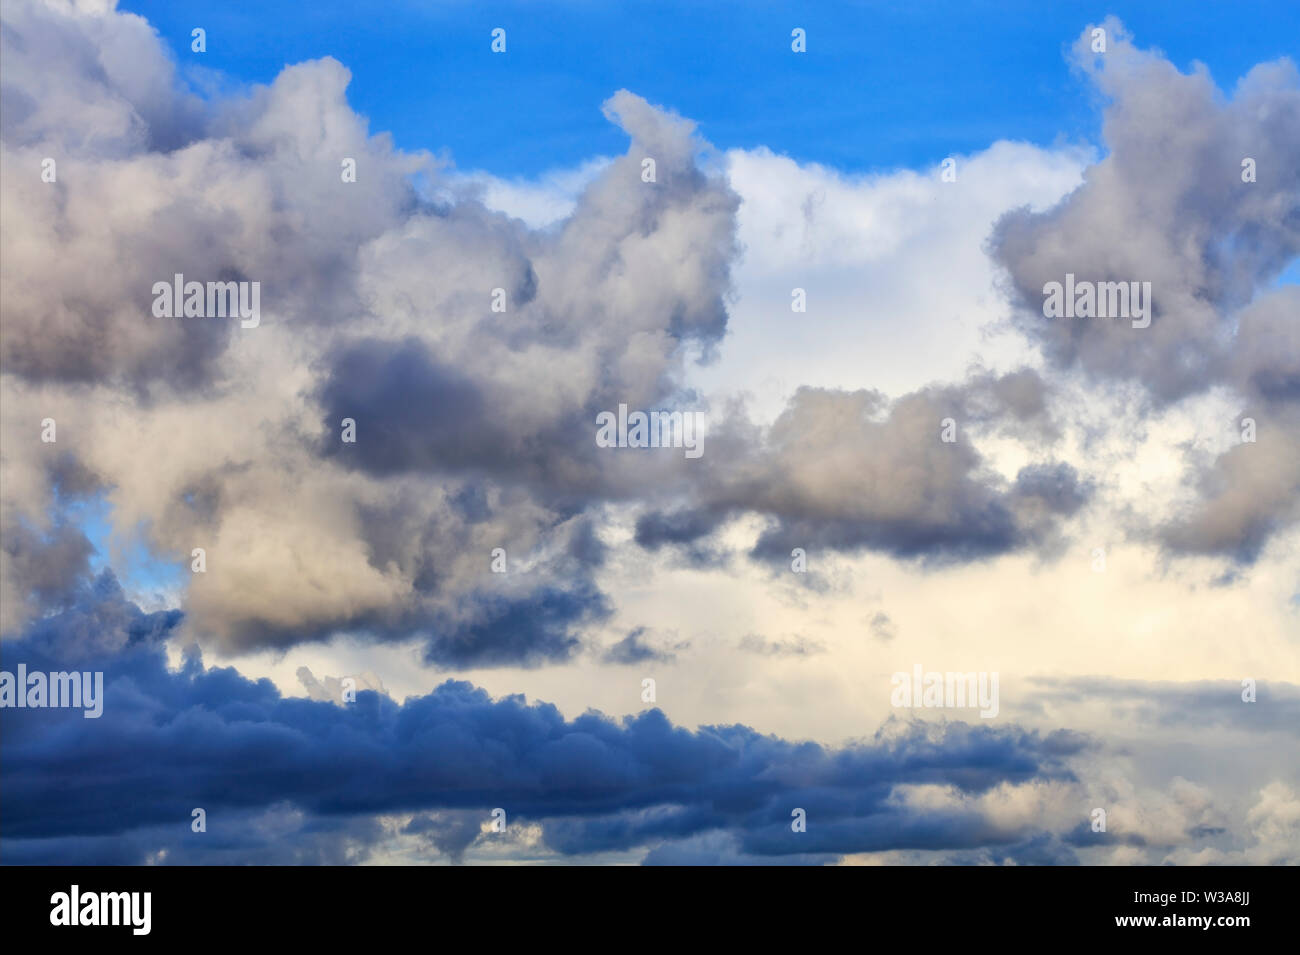 Thunderclouds float in the sky, gathering together. Stock Photo